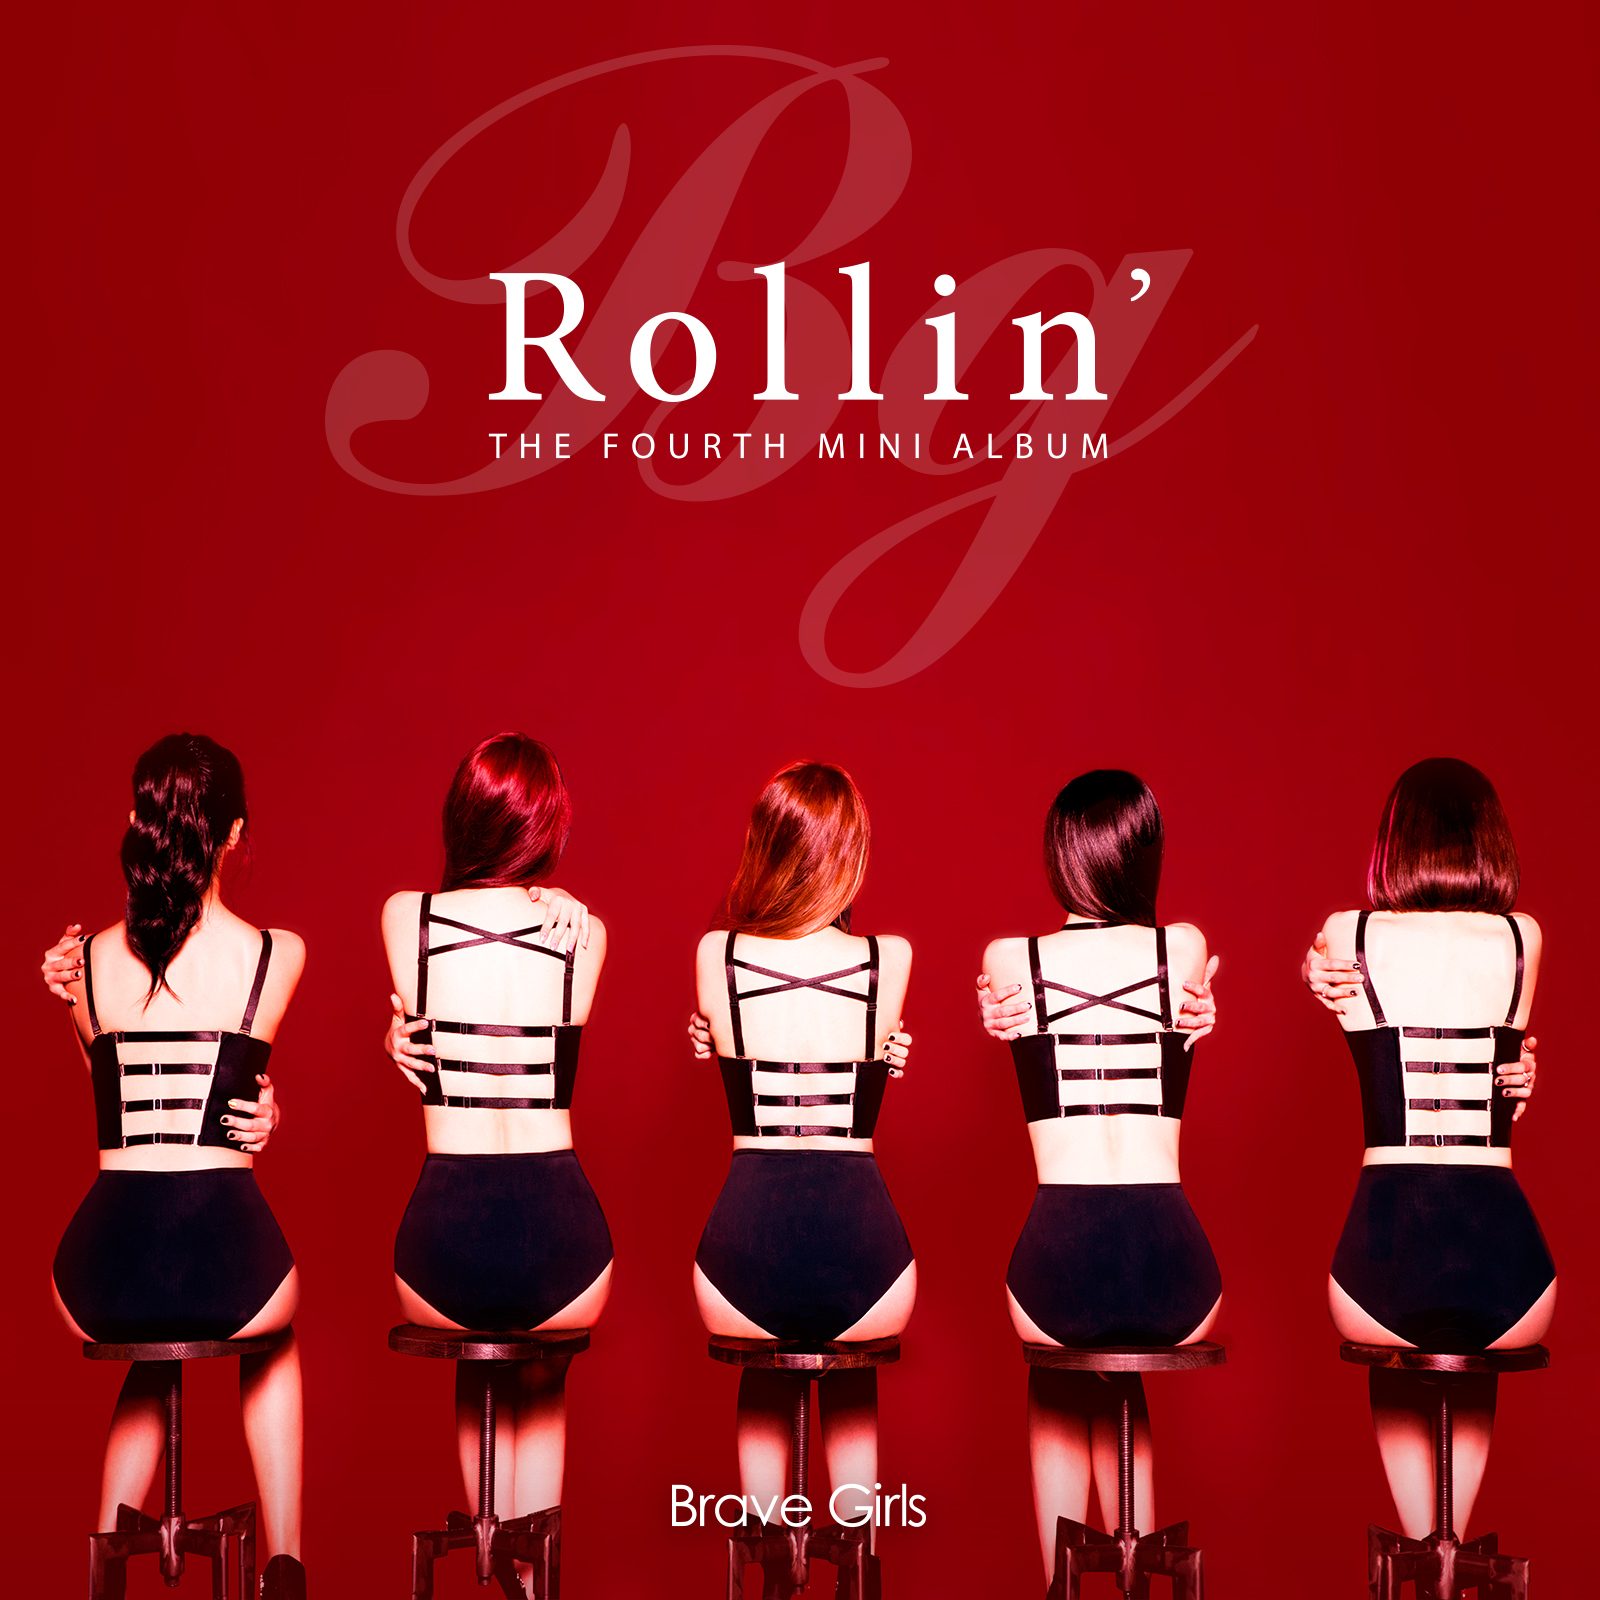 20170413.0820.02 Brave Girls - Rollin' cover.jpg